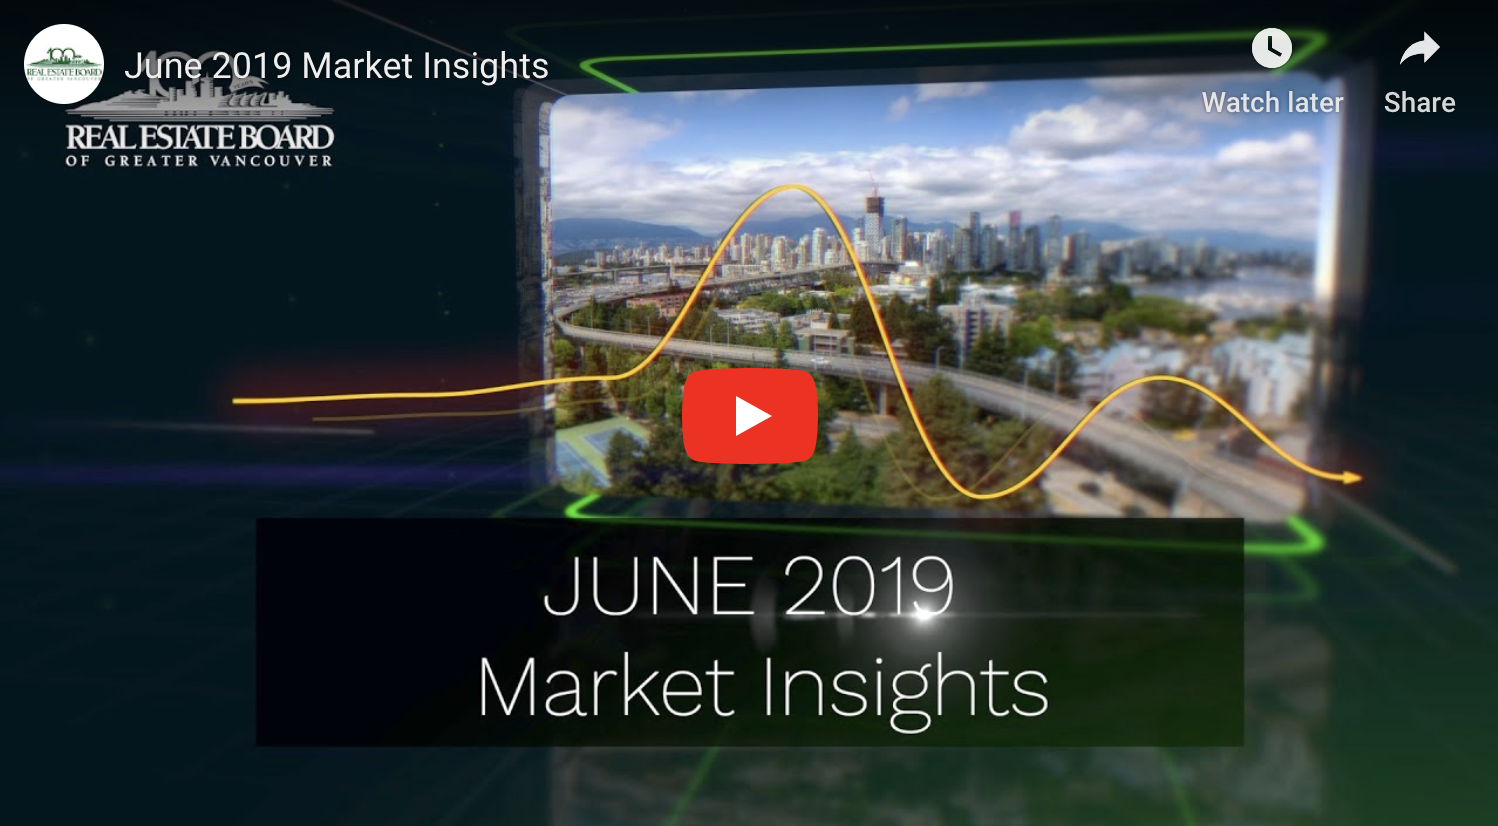 REBGV - June 2019 Market Insights